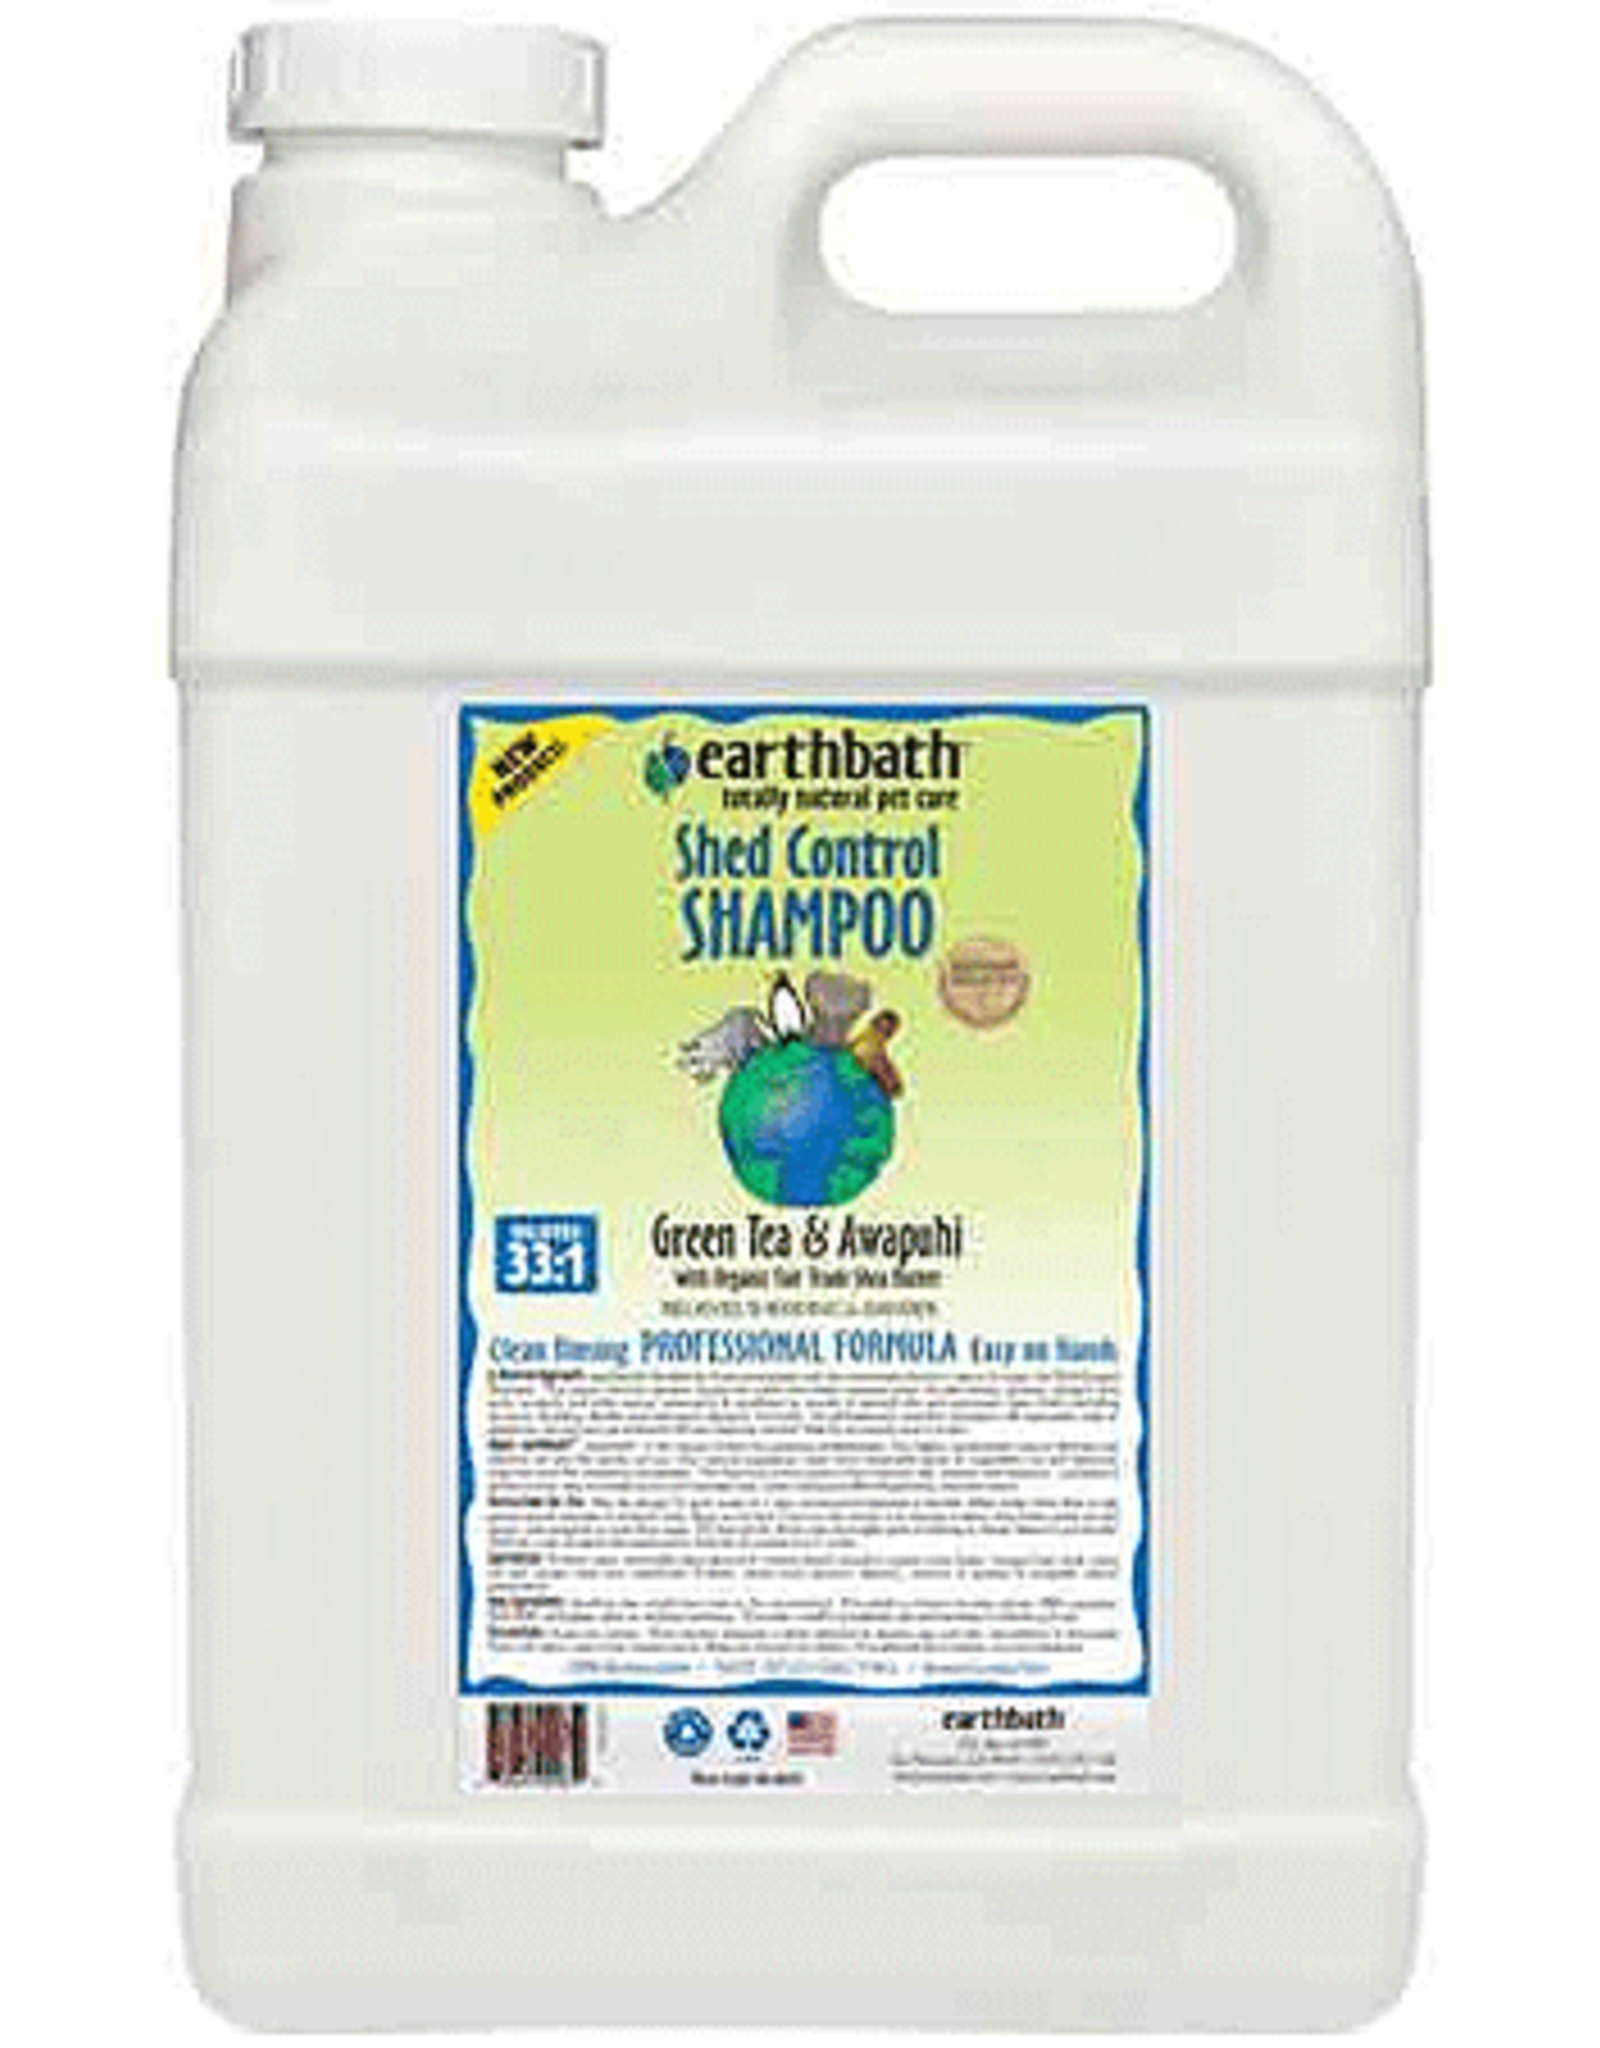 Earthbath EARTHBATH Shed Control Shampoo 2.5G